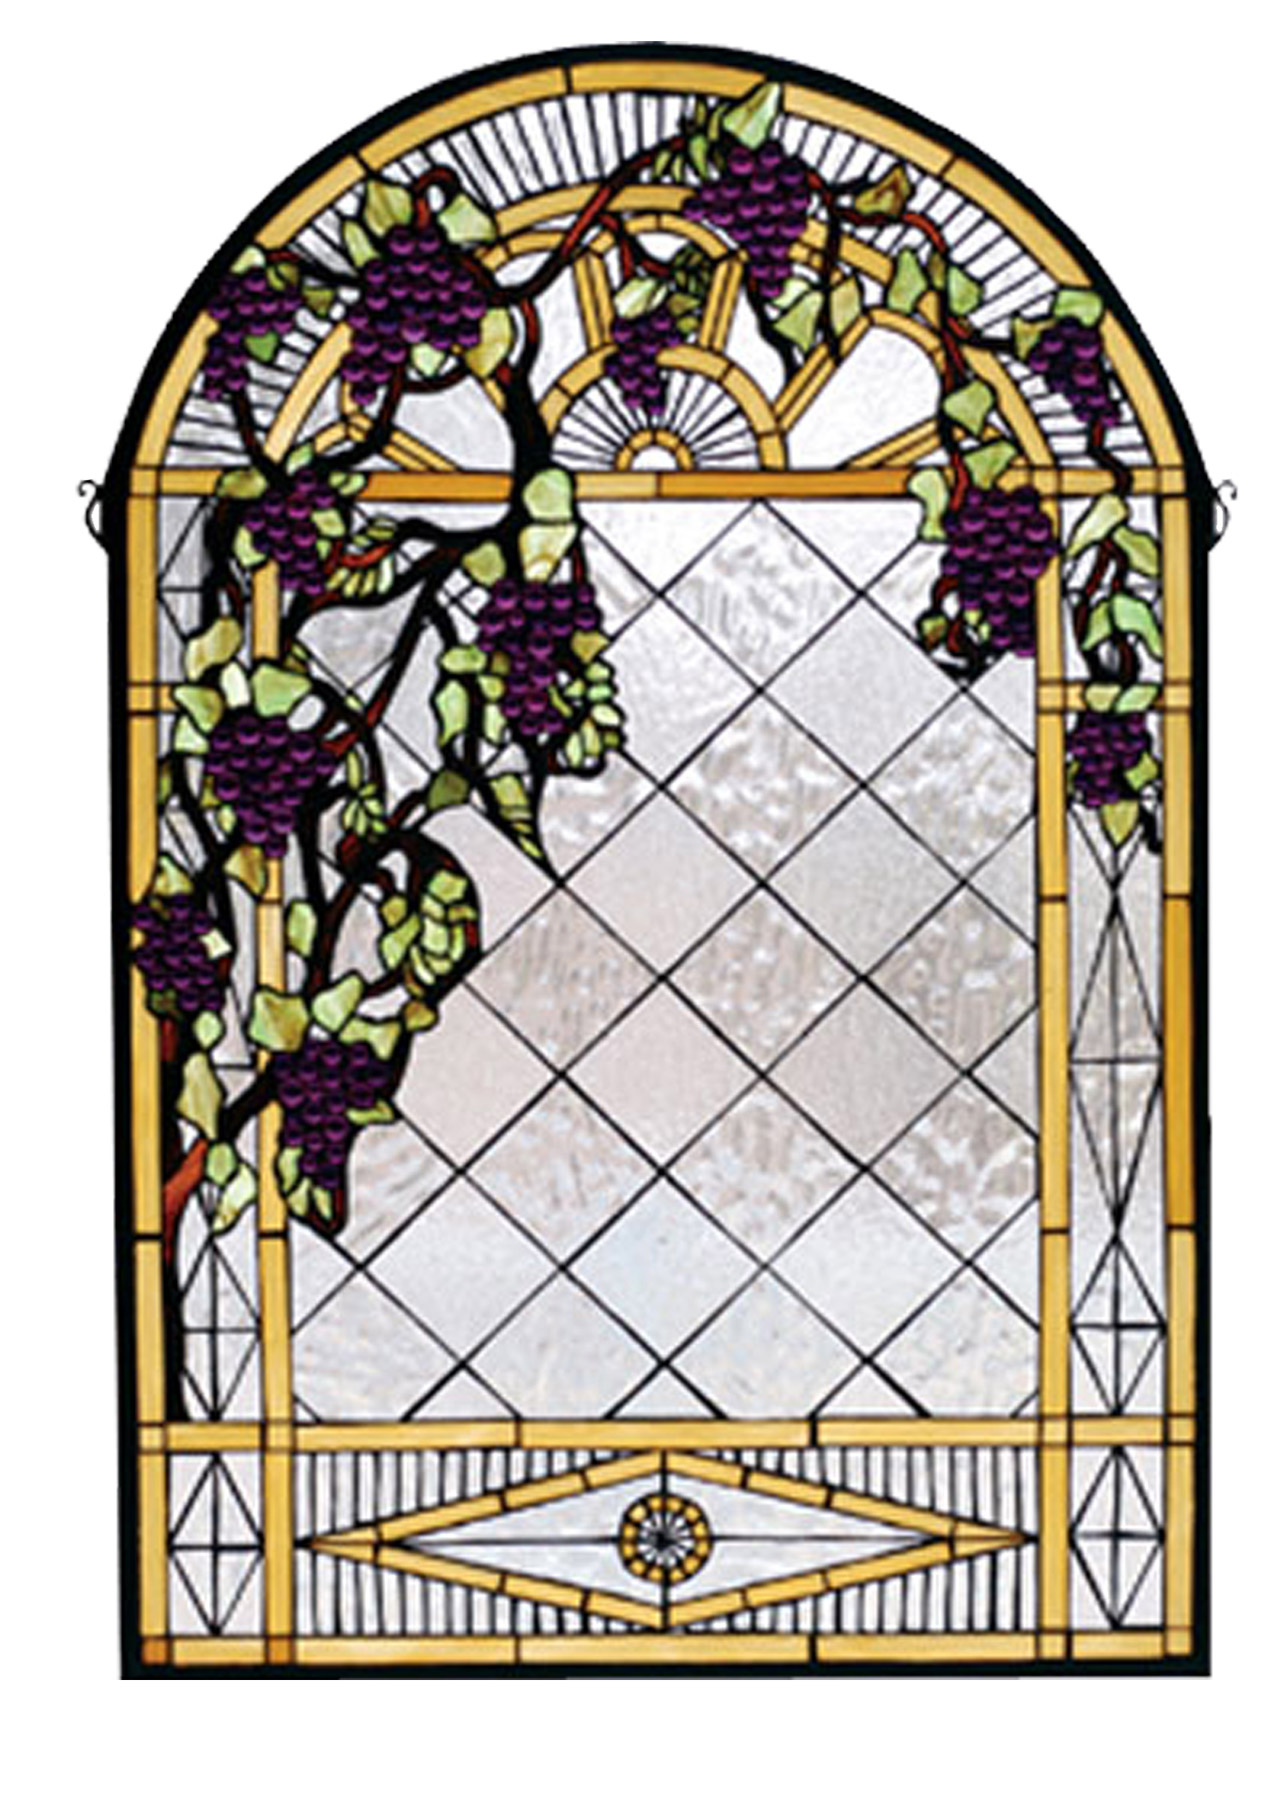 Meyda 66048 Tiffany Grape Diamond Trellis Stained Glass Window